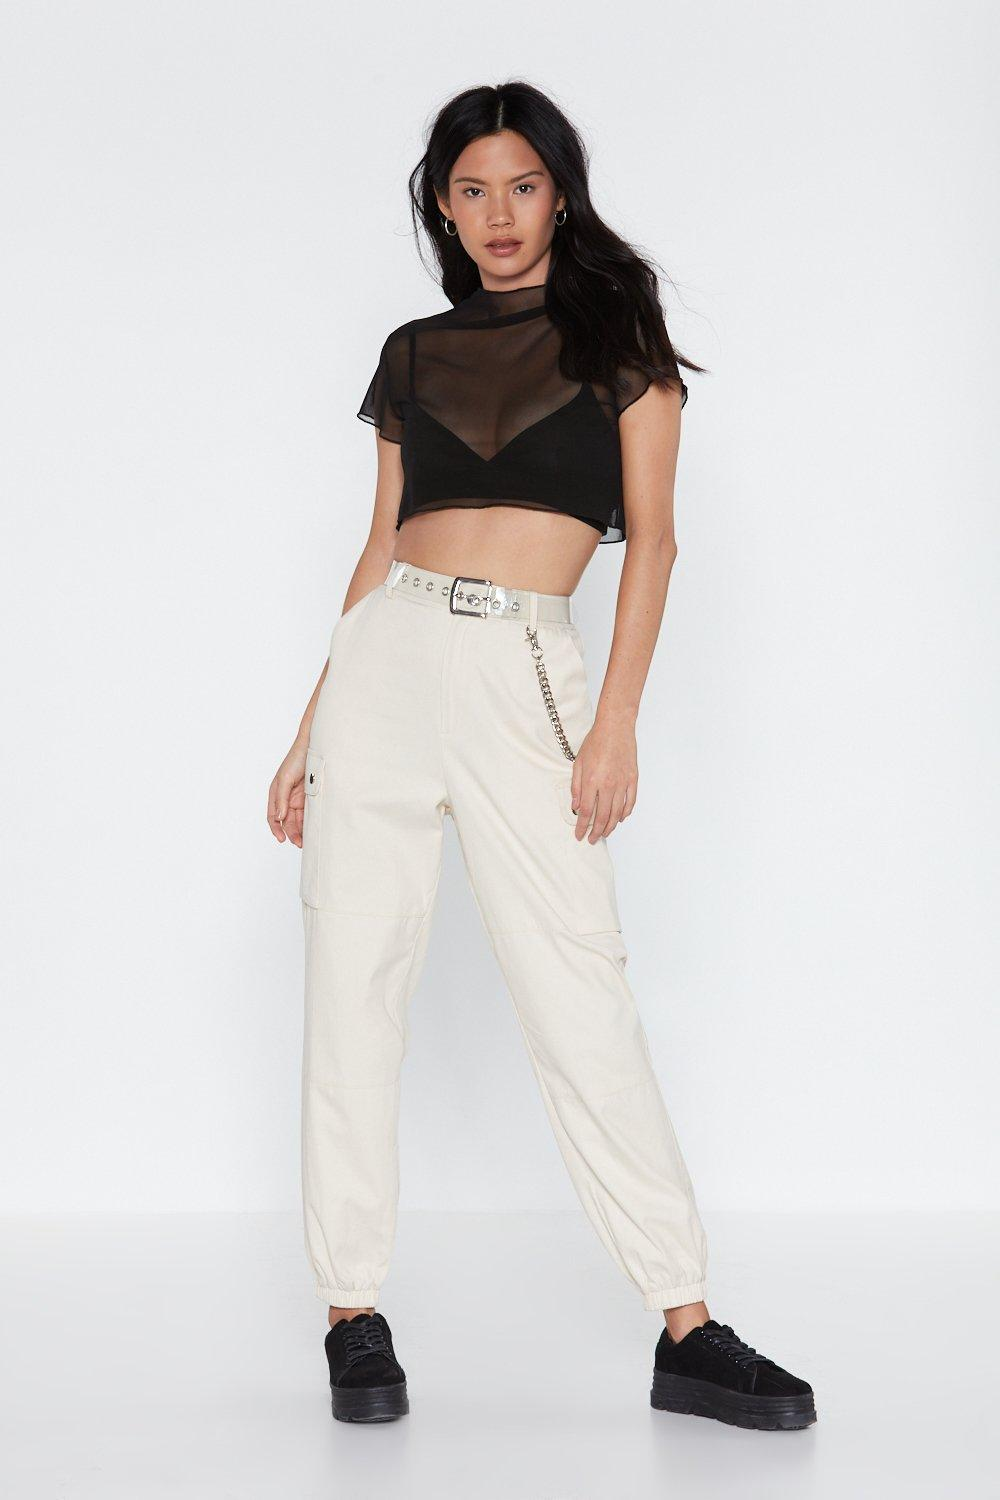 1f239d49c9733 Glad to Sheer It Mesh Crop Top